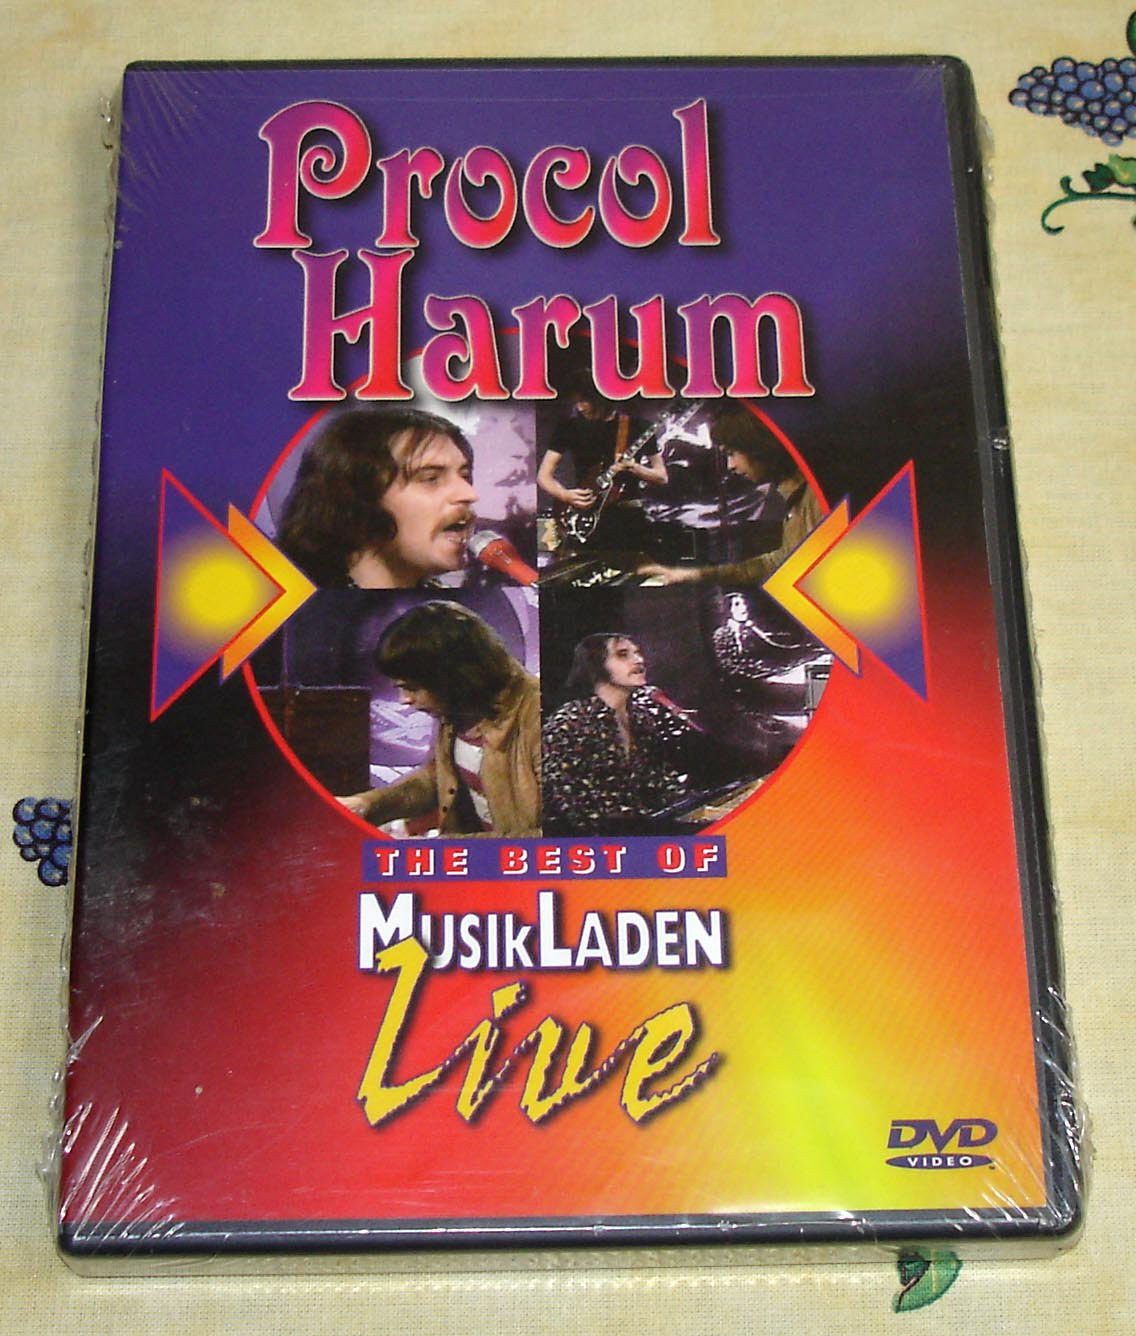 Procol Harum The Best Of MusikLaden Live DVD